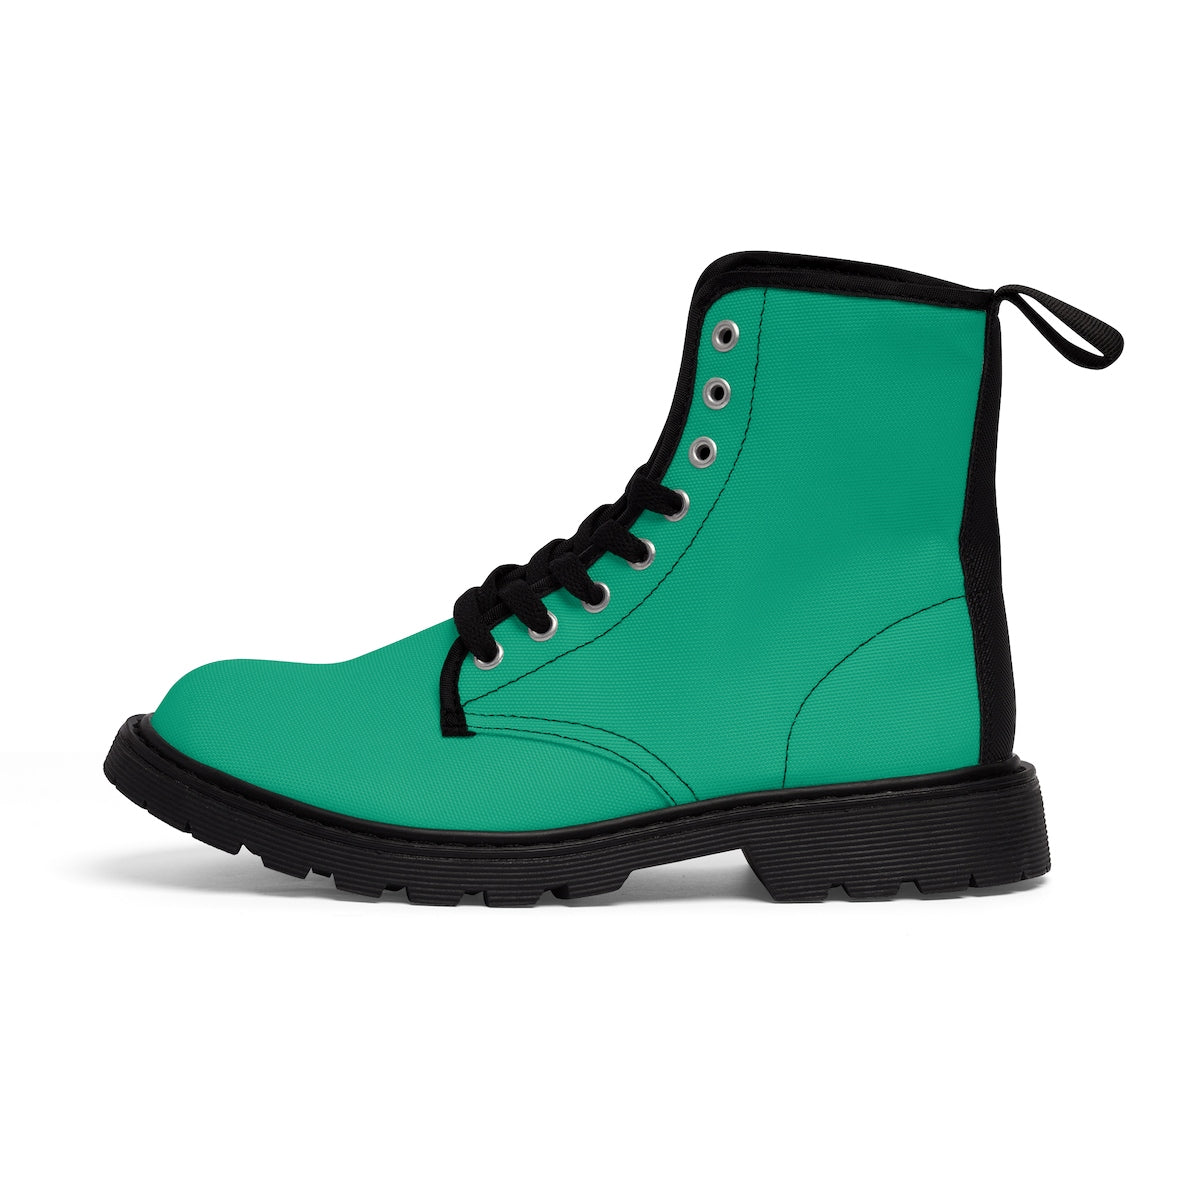 Turquoise Blue Classic Solid Color Designer Women's Winter Lace-up Toe Cap Boots-Women's Boots-Black-US 9-Heidi Kimura Art LLC